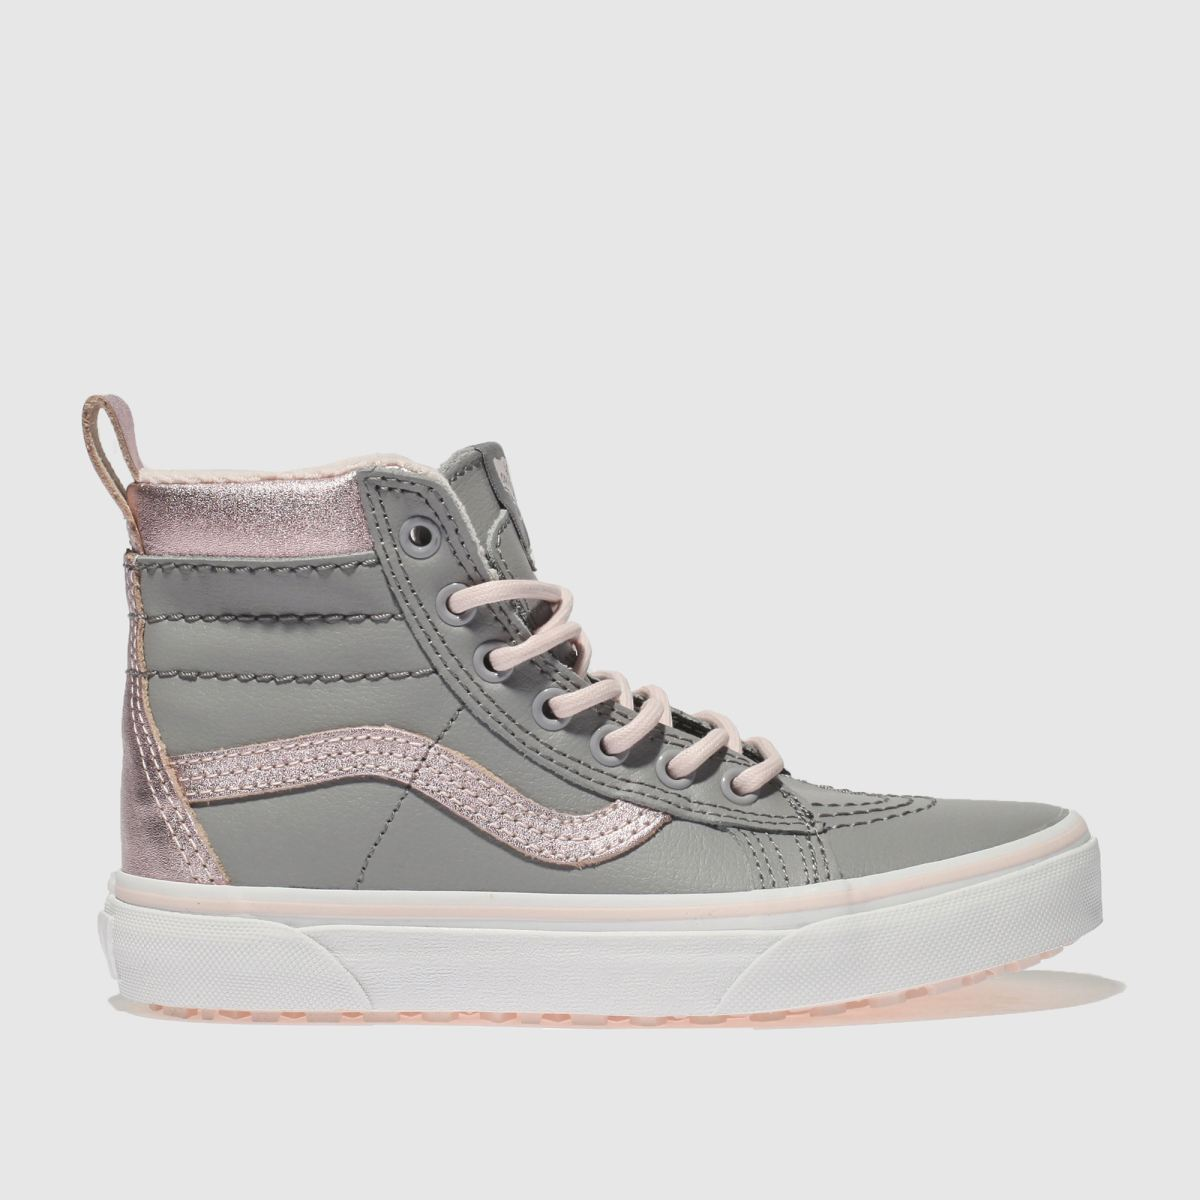 390a91cb50d0 Vans Grey Sk8-hi Mte Trainers Junior - Schuh at Westquay - Shop Online